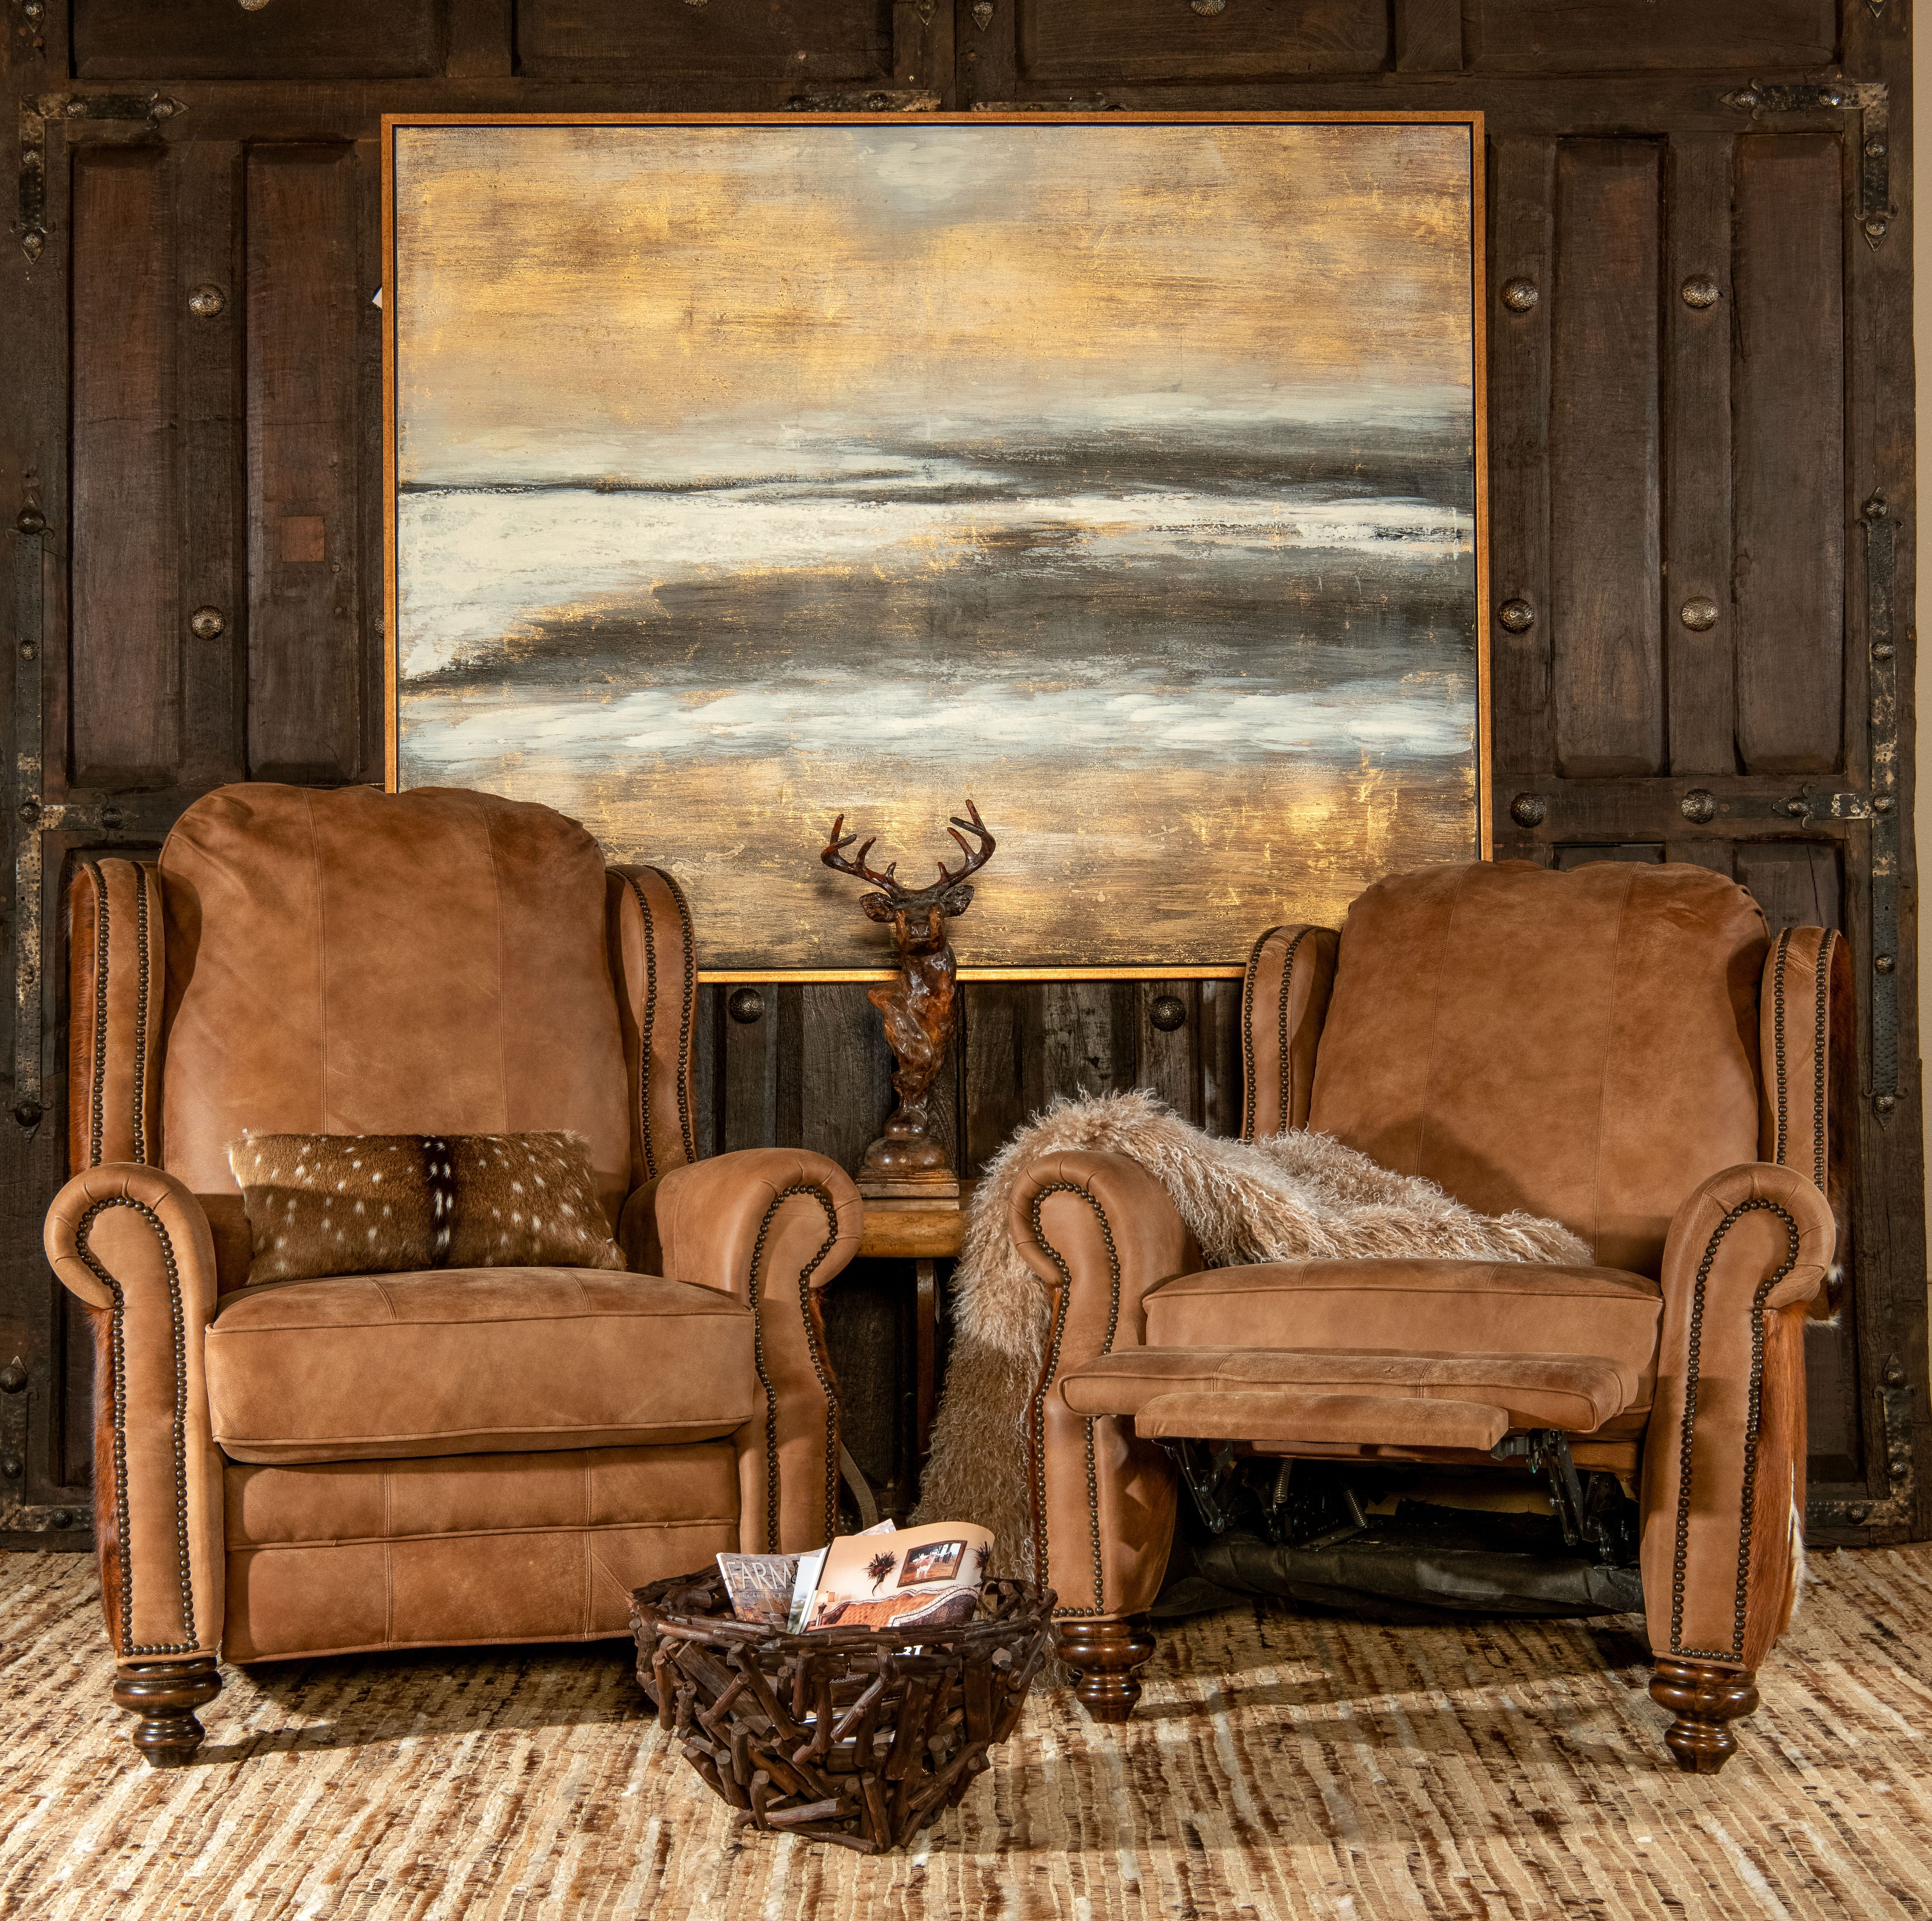 Cowboy Brindle Recliner Ranch Style Decor Rustic Living Room Furniture Ranch Decor